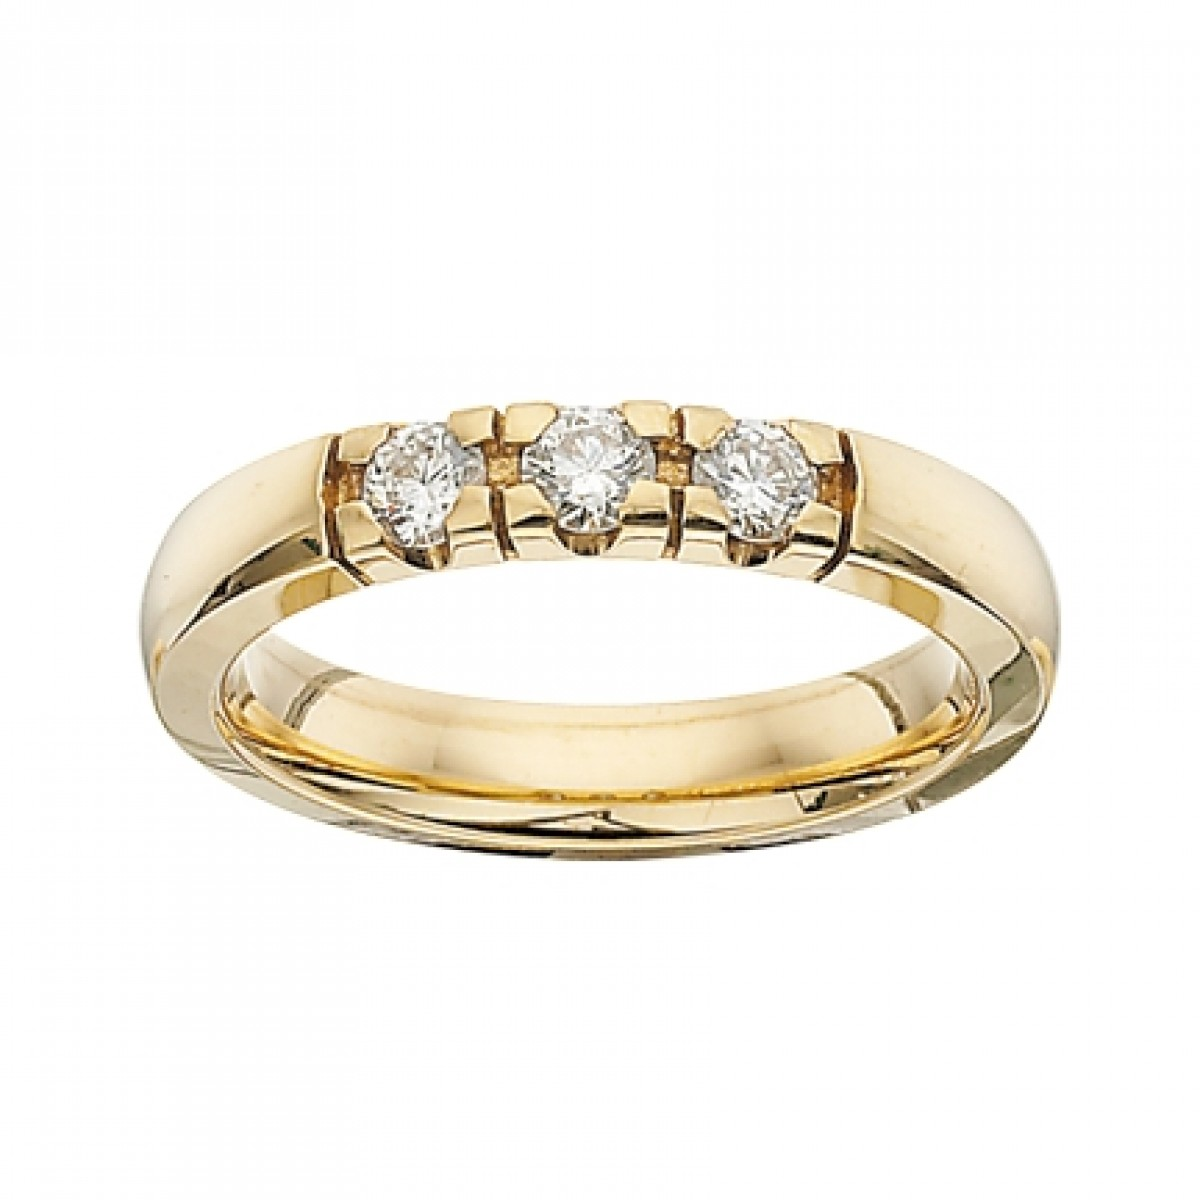 GRACE alliancering 14 karat guld med 3 x 0,11 ct W/SI brillanter-3